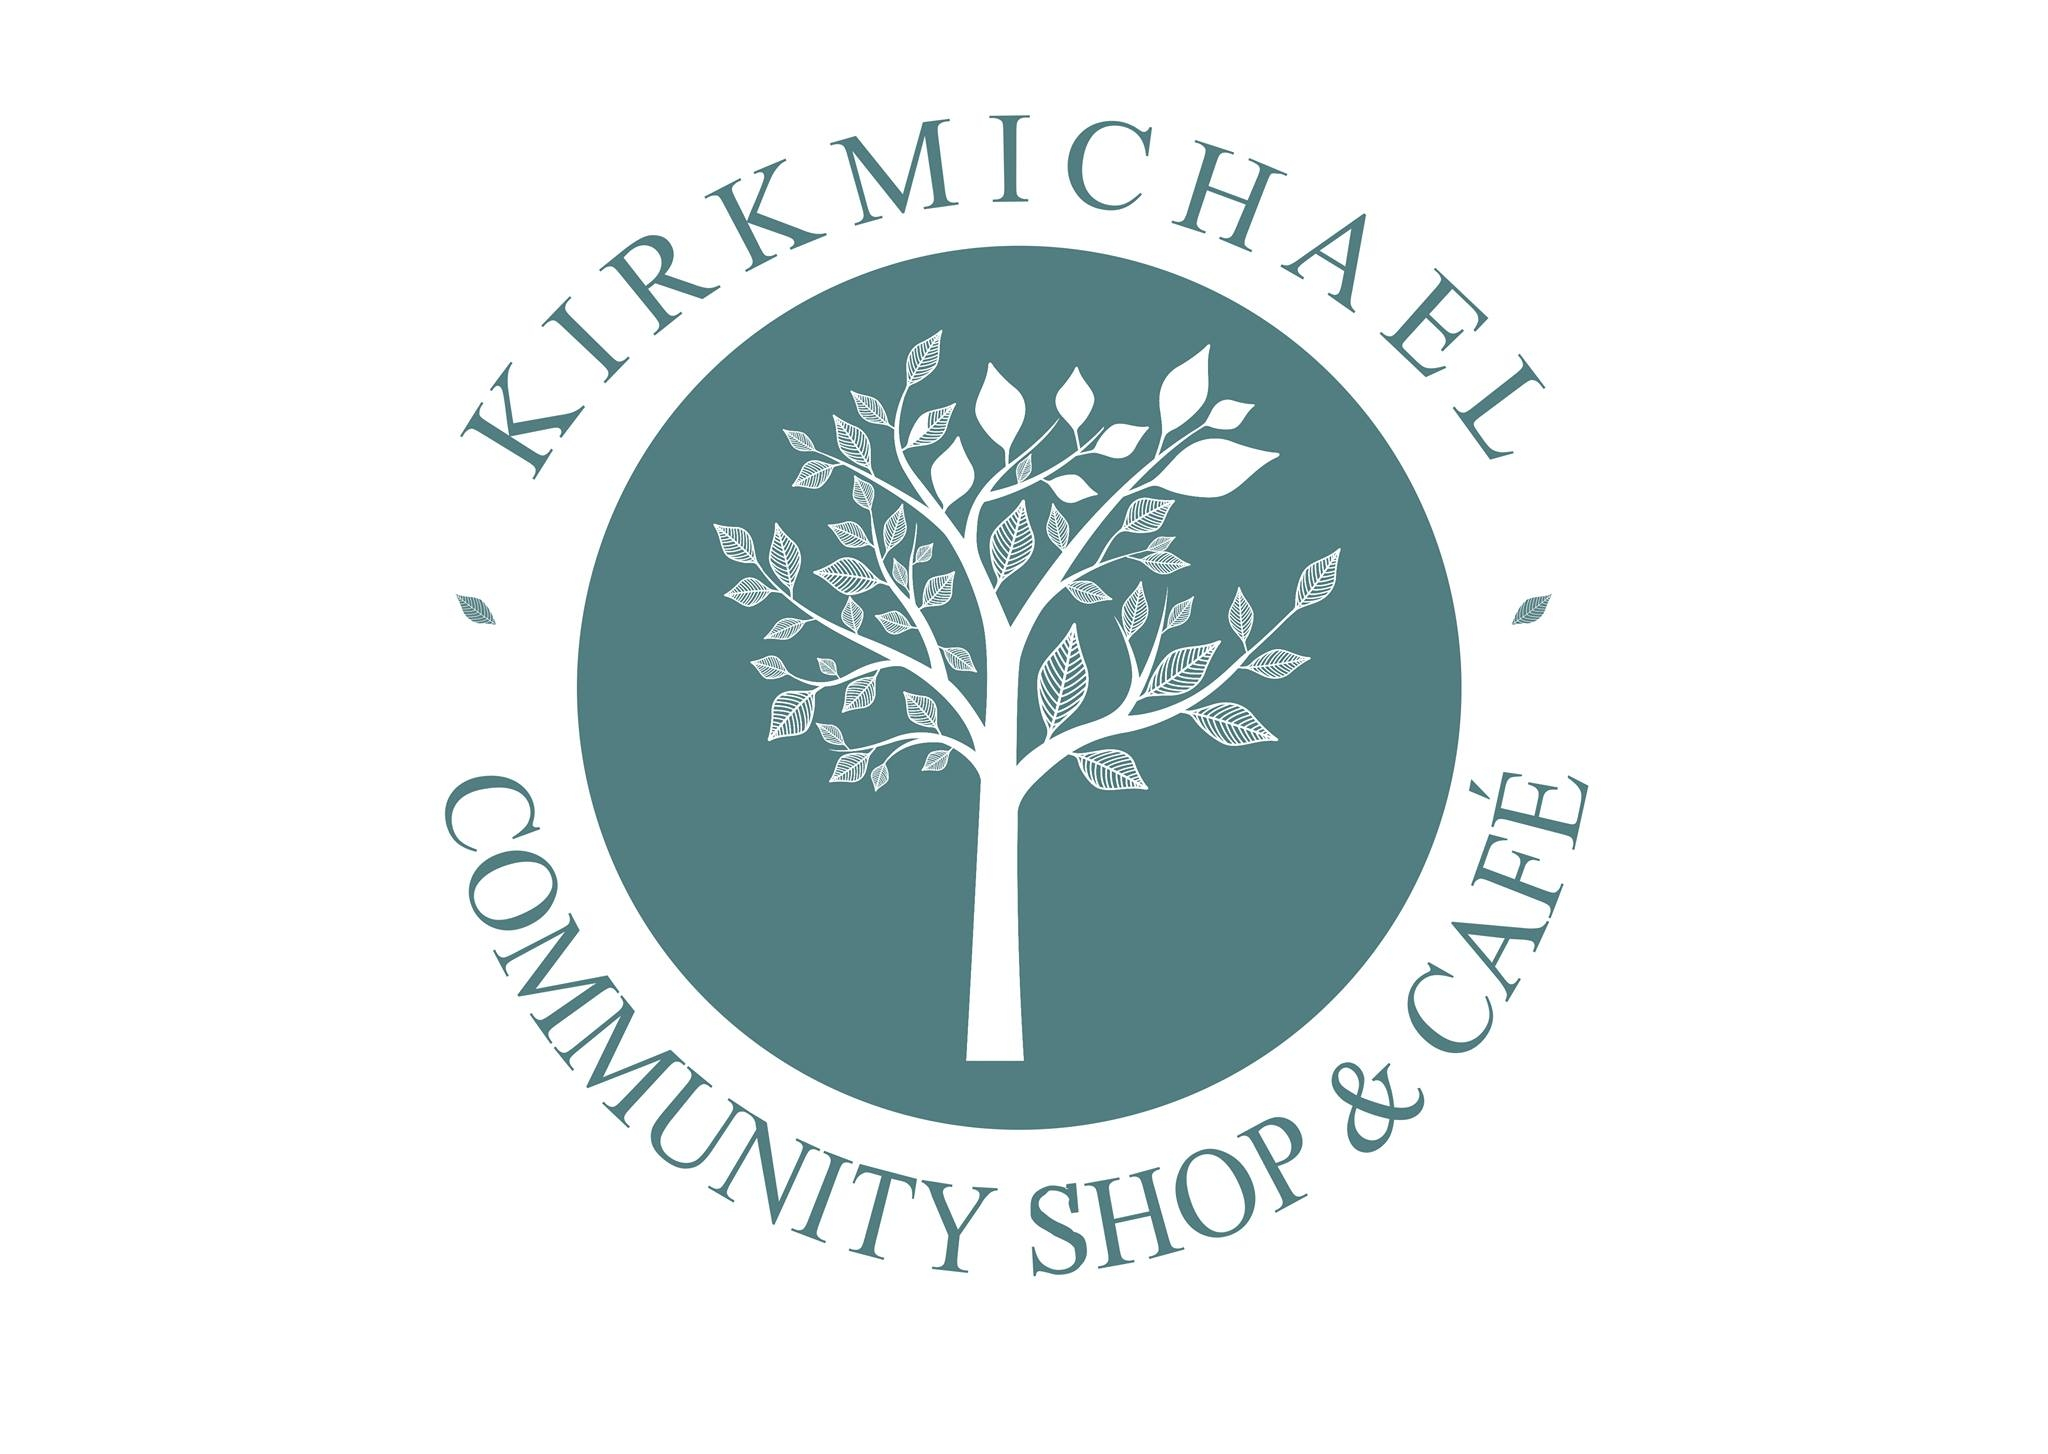 Kirkmichael Sop and Cafe